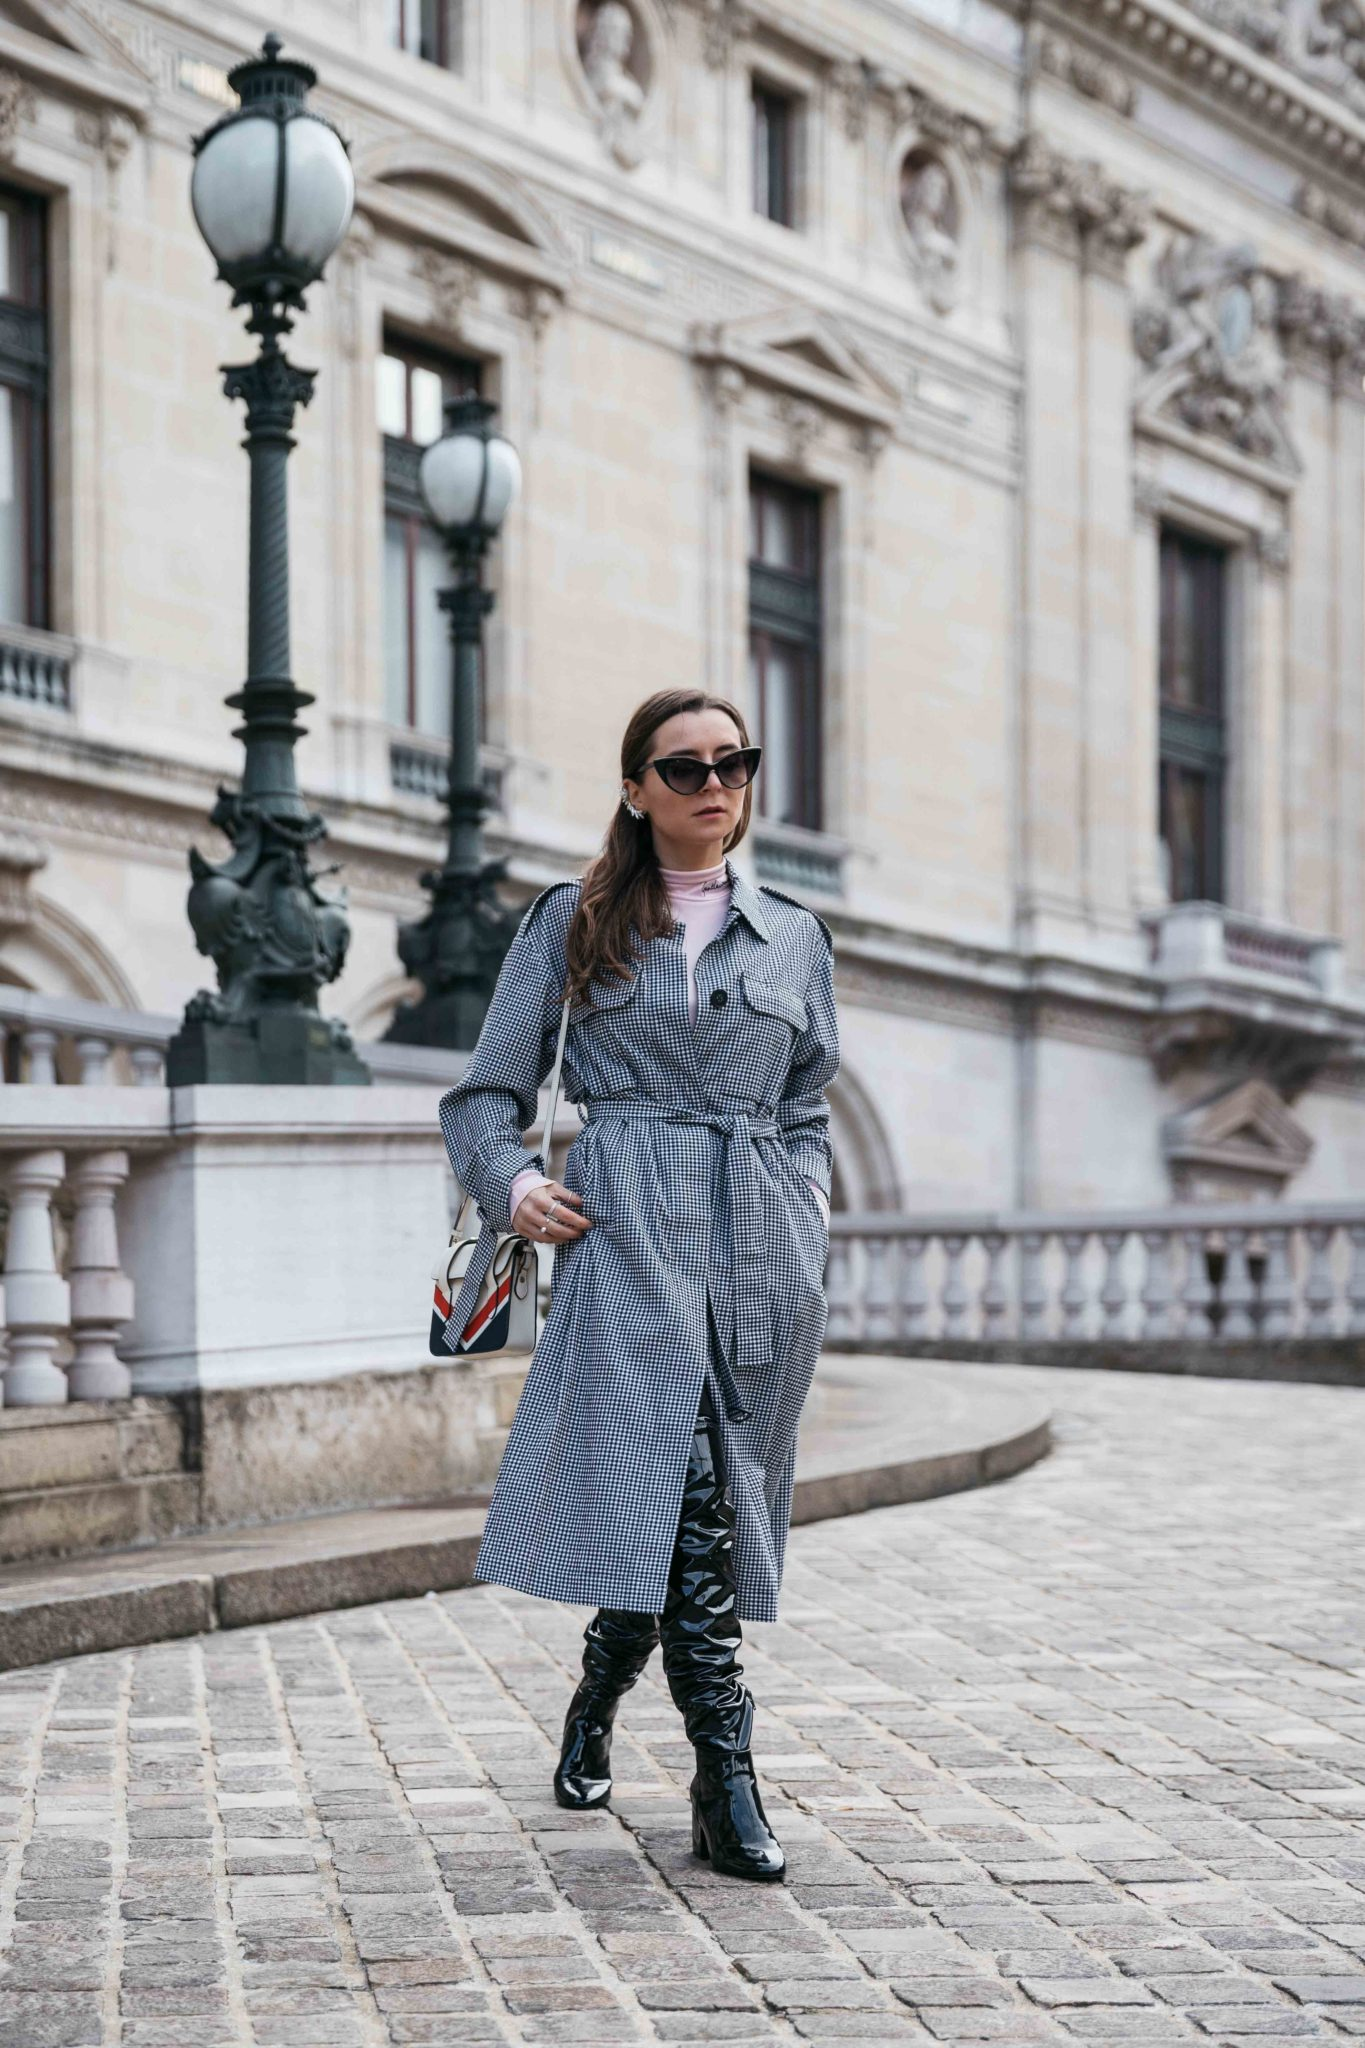 Best Street Style Paris Fashion Week Mars 2018 of Julia Comil / French Fashion Blogger in Los Angeles - Outfit for Leonard Paris Fall Winter 2018 2019 show - gingham spring coat by Mo&Co - Patent over the knee boots by Aldo - Strathberry bag - Shot in Paris Palais Garnier